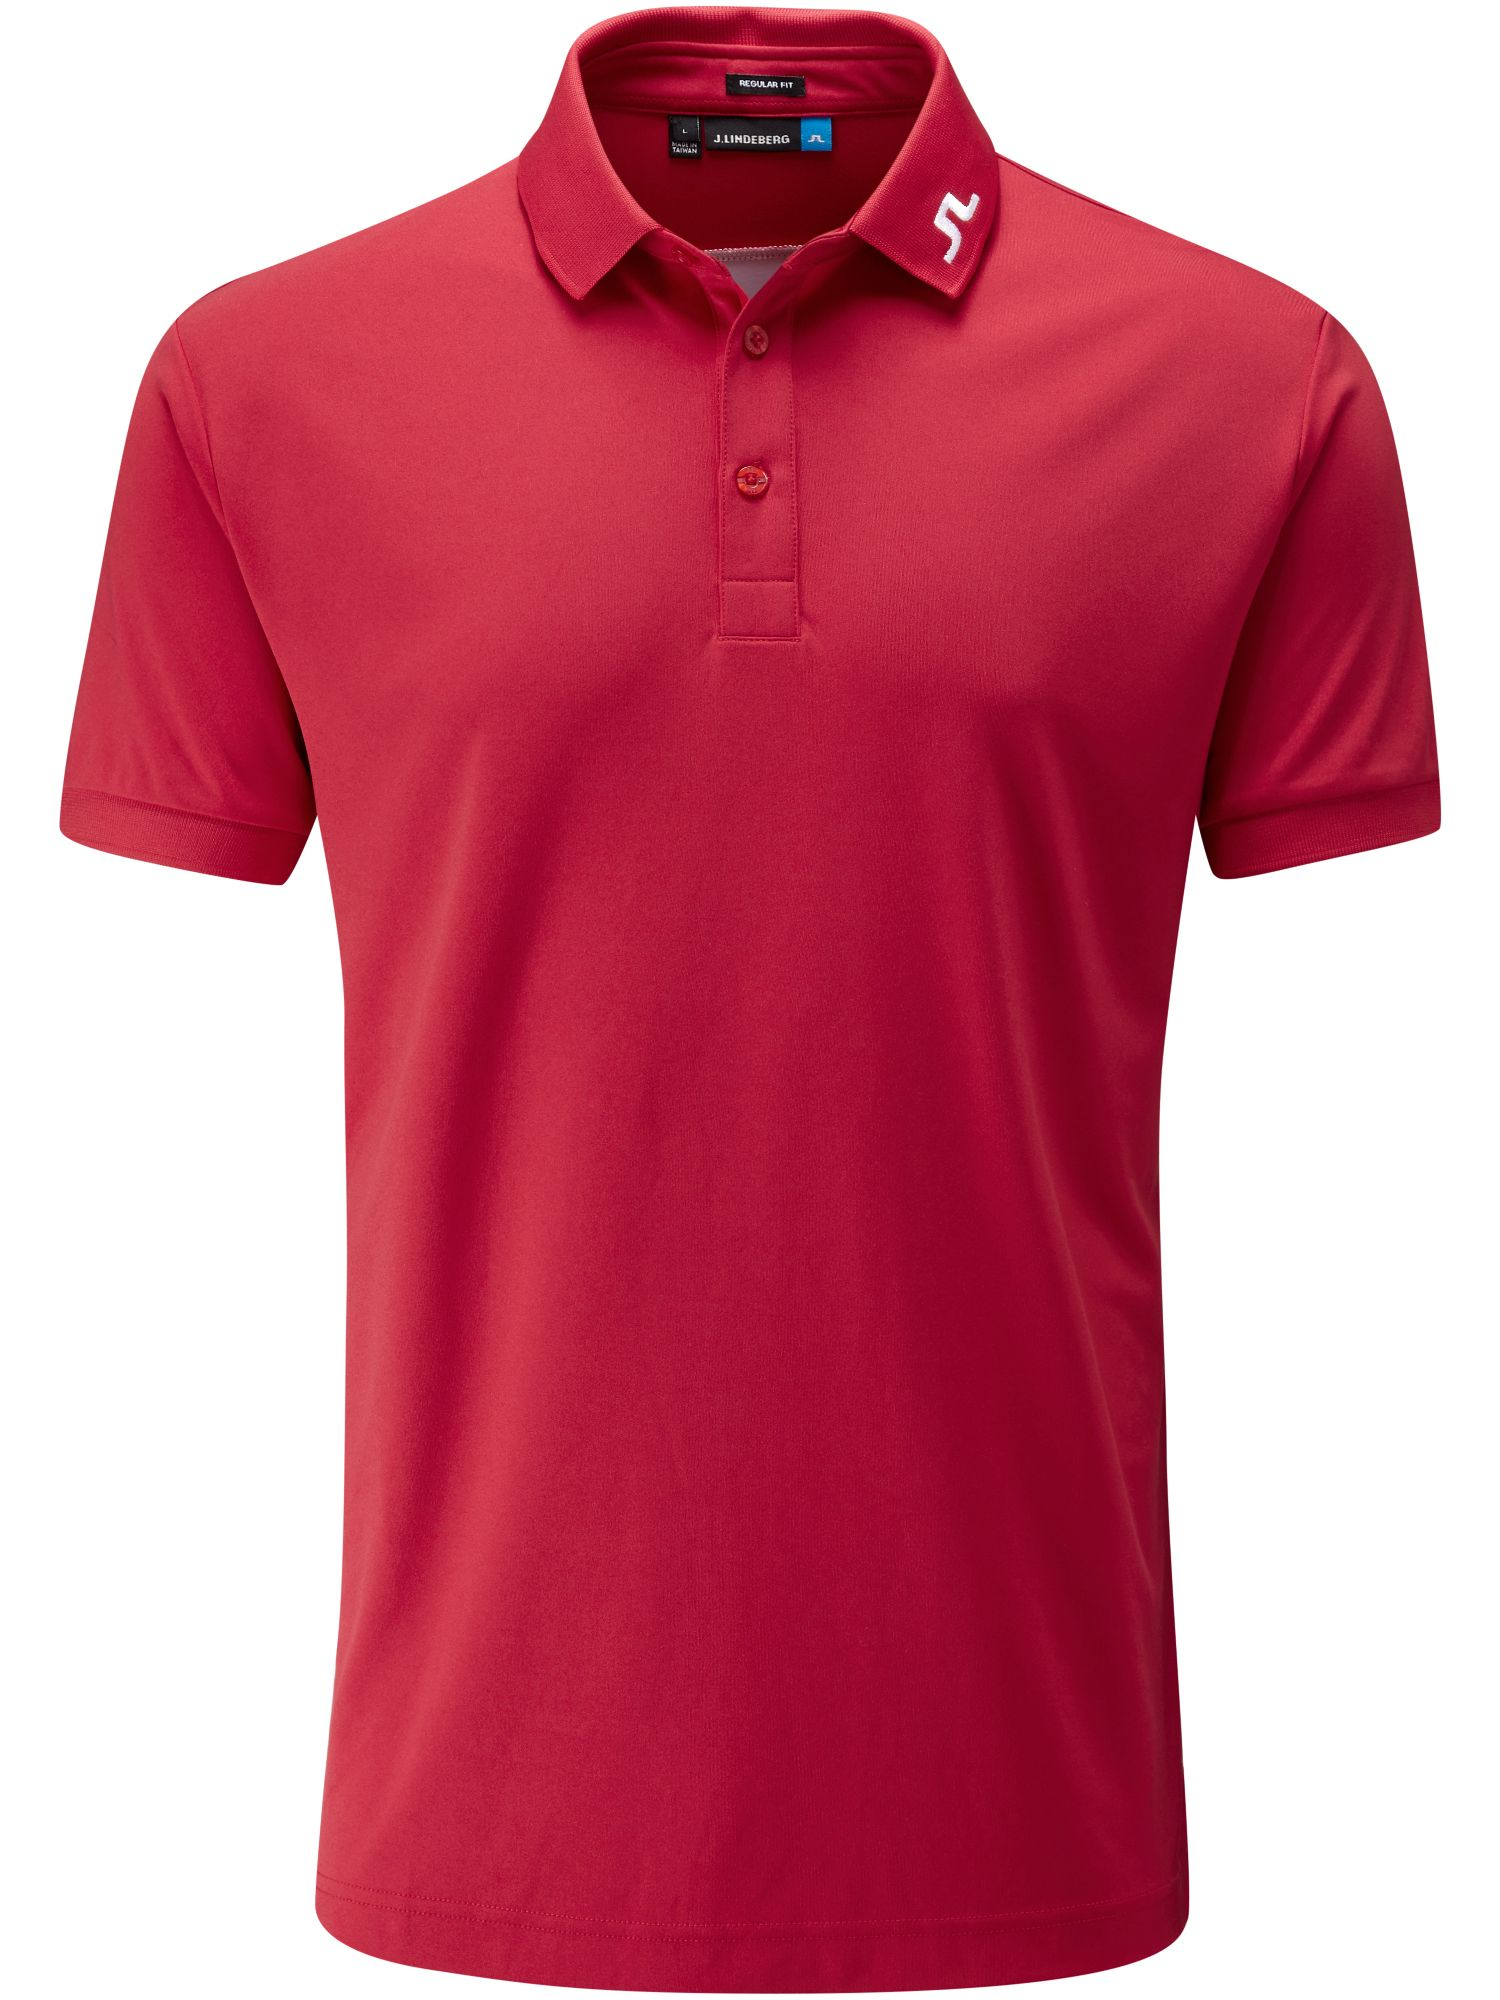 Men's J Lindeberg Golf KV TX Polo, Red